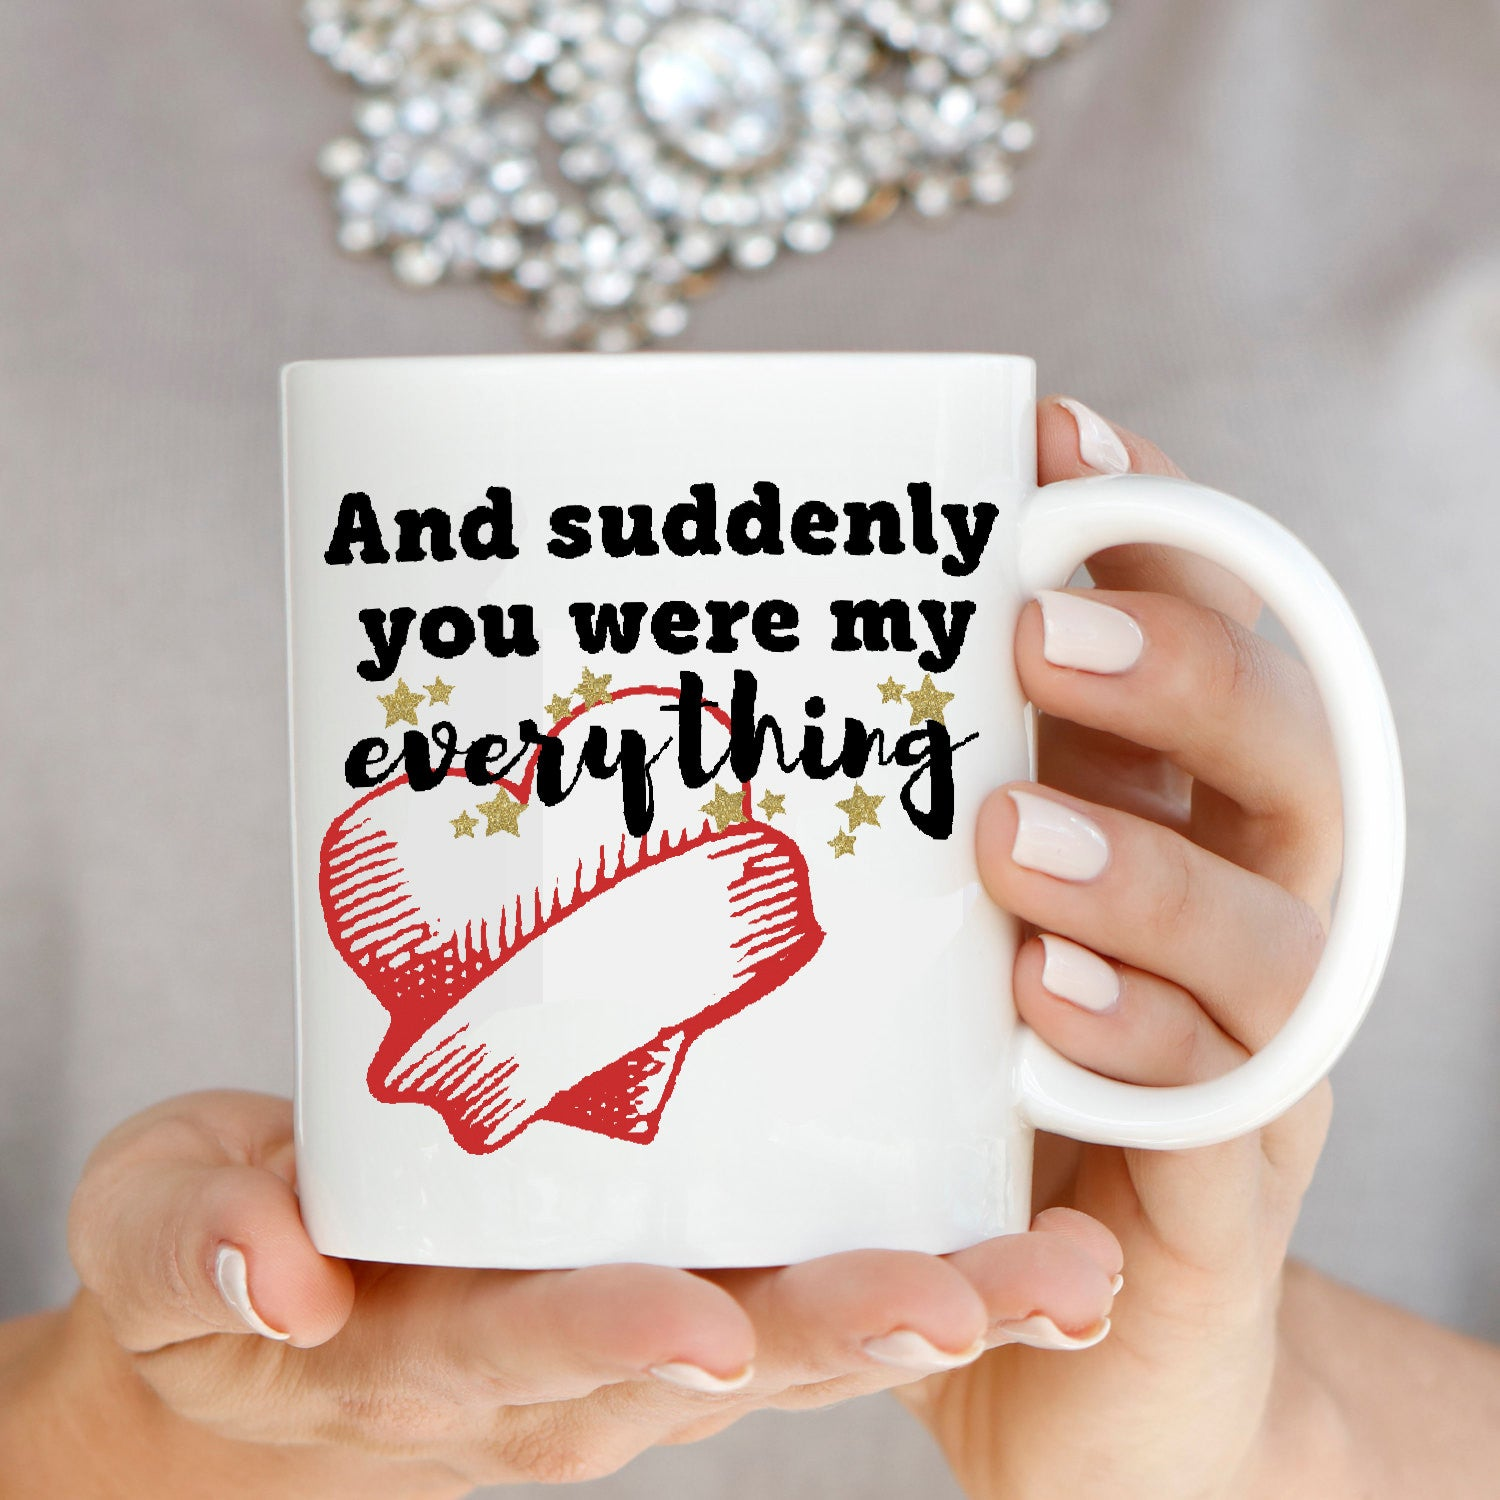 Wedding Gifts For Couples Who Have Everything: Romantic Gift For Husband And Wife Couple Mug, Unique